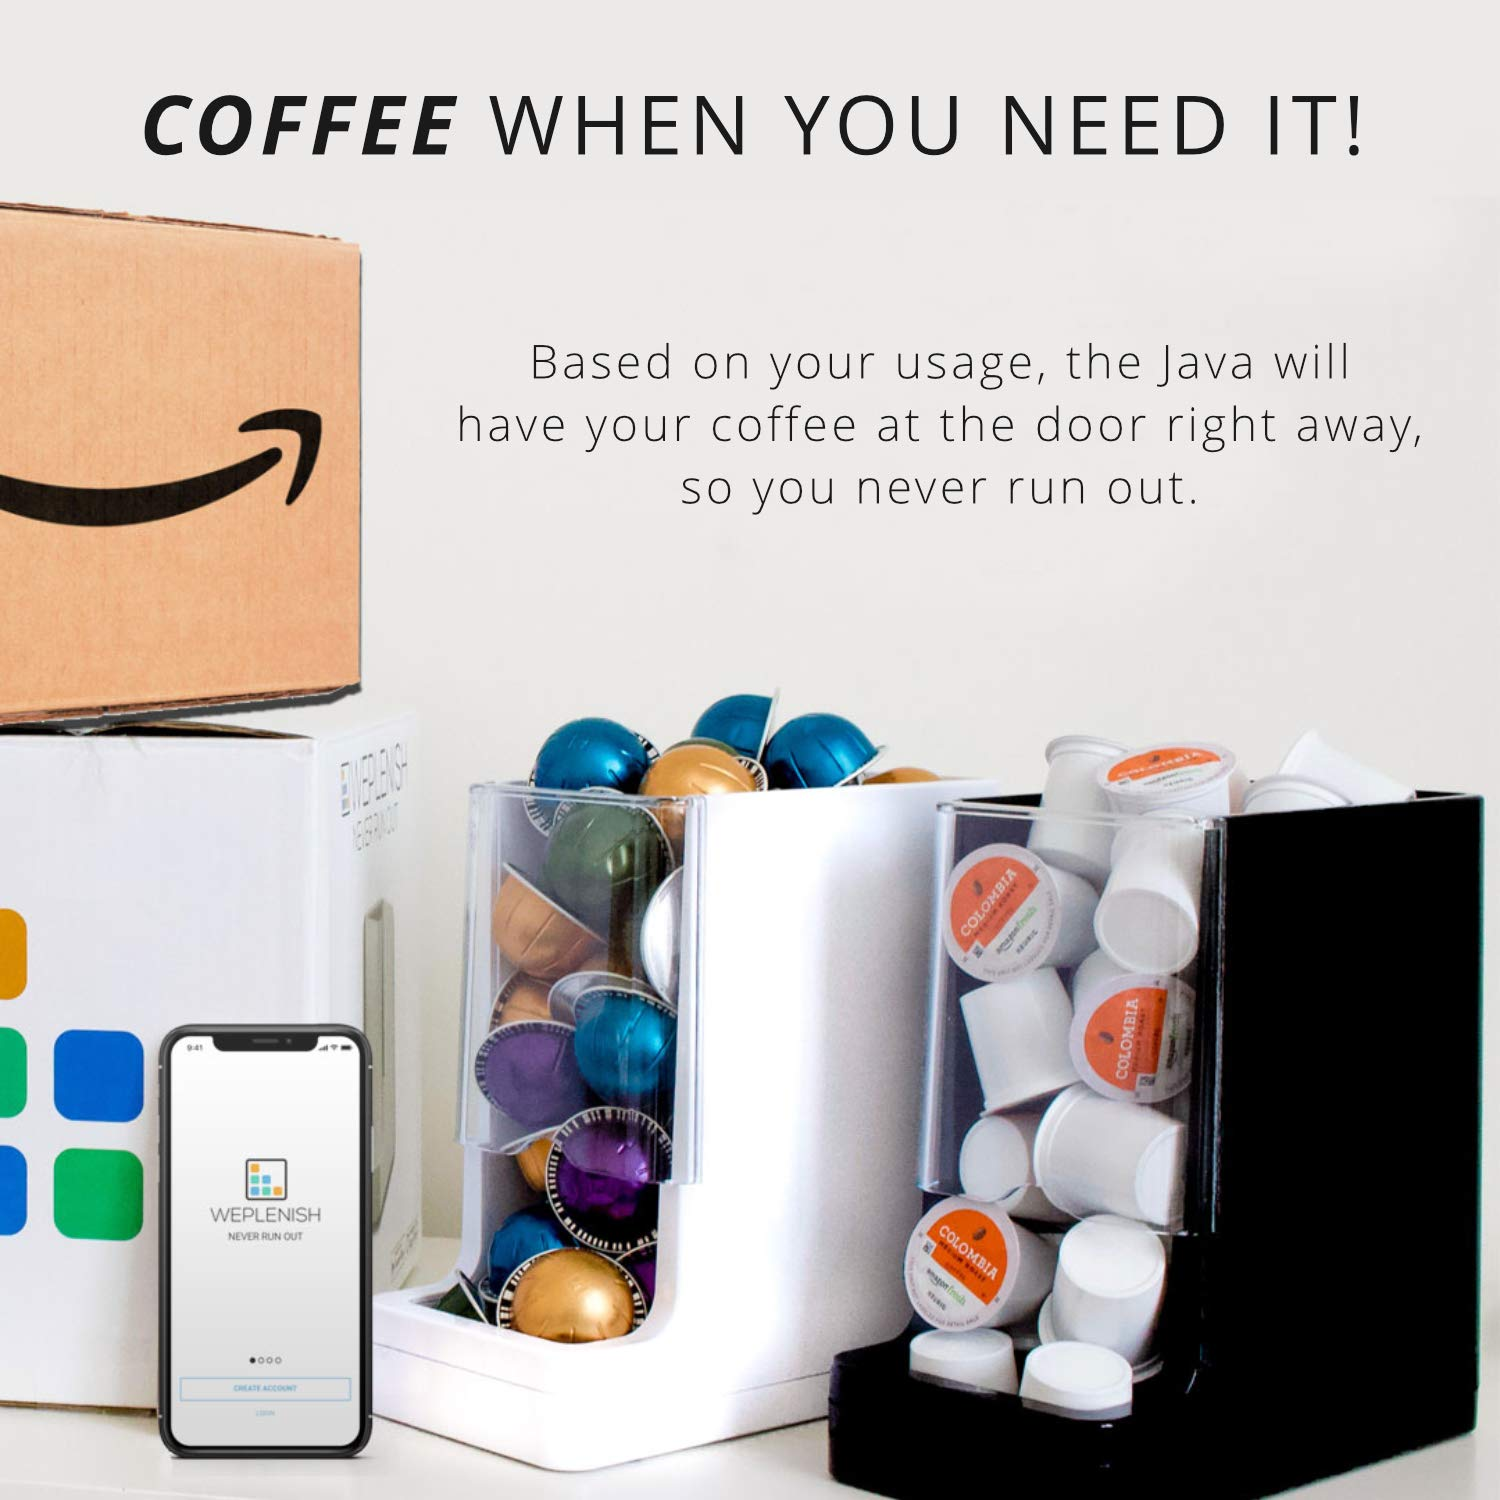 Never Run Out of Coffee - WePlenish Java - Smart Coffee Pod Holder with Amazon Dash Replenishment Built In | Nespresso Capsule and Keurig K-Cup Holder Black by WePlenish (Image #2)